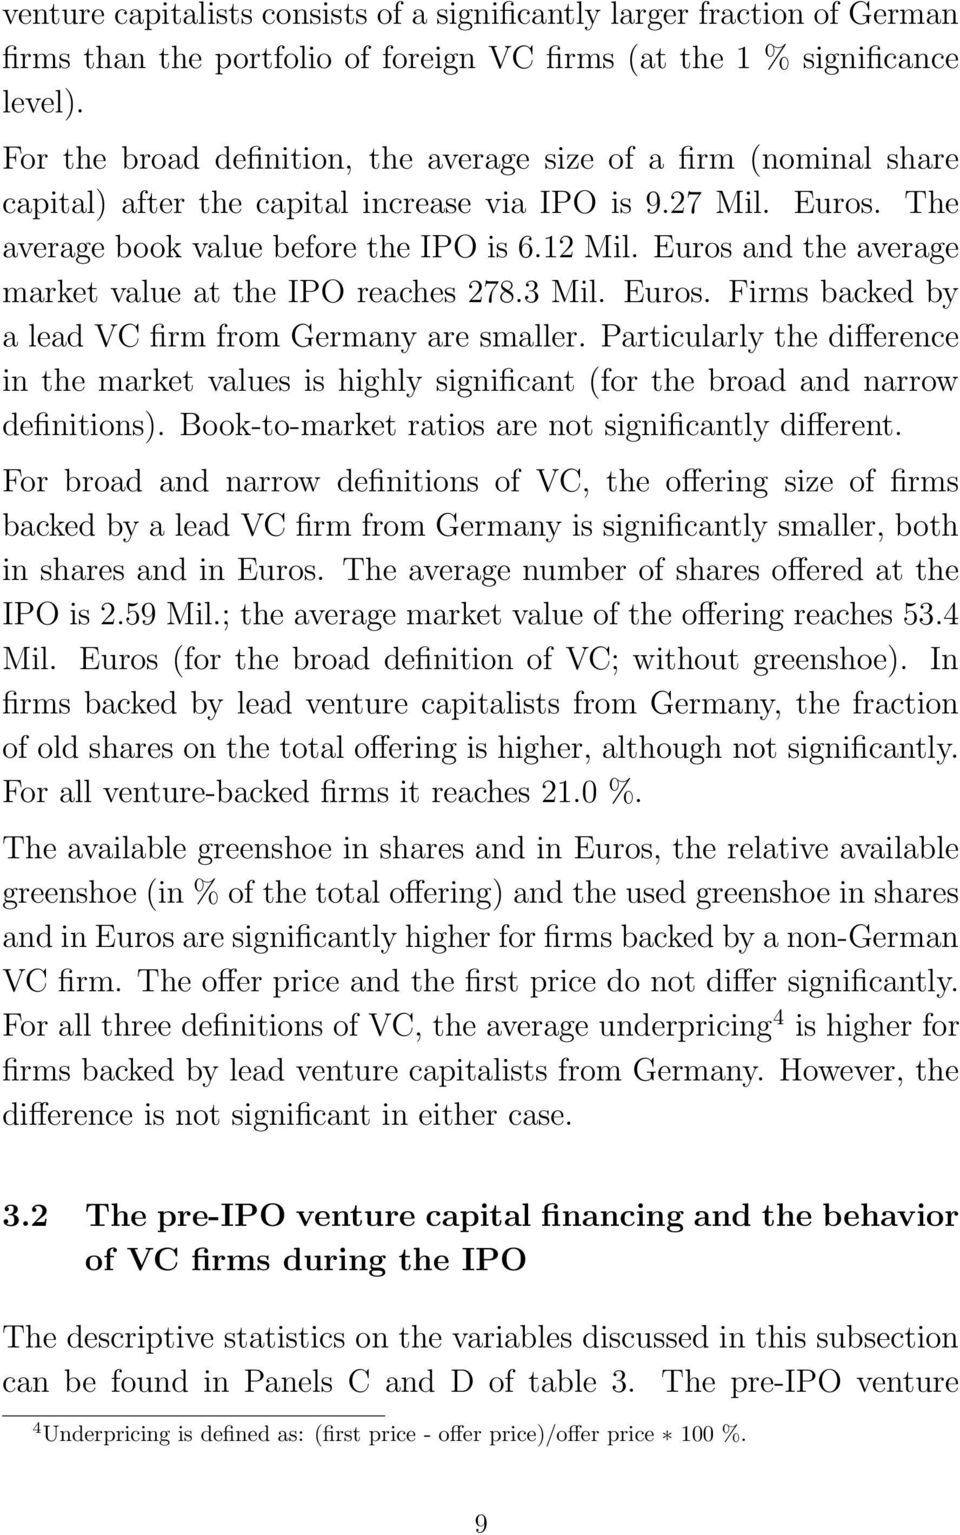 Euros and the average market value at the IPO reaches 278.3 Mil. Euros. Firms backed by a lead VC firm from Germany are smaller.